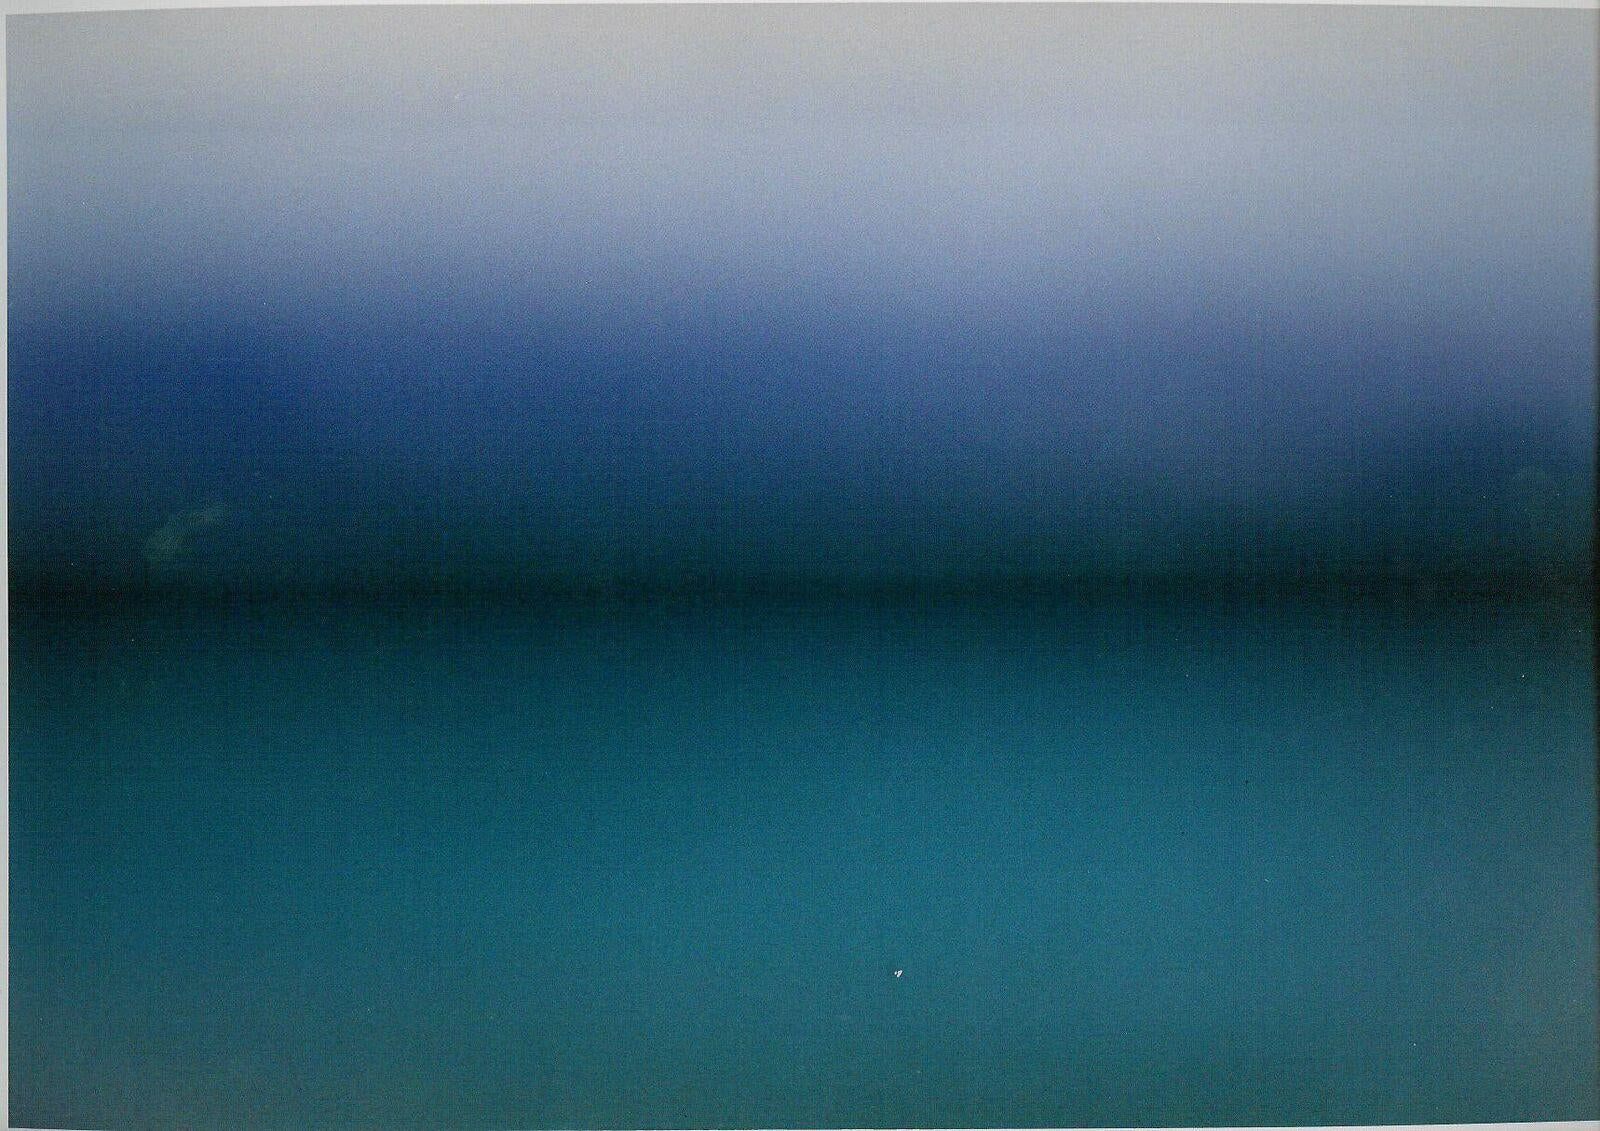 Seascape (Blue) - Limited Edition Abstract Color Photography - Digital Print